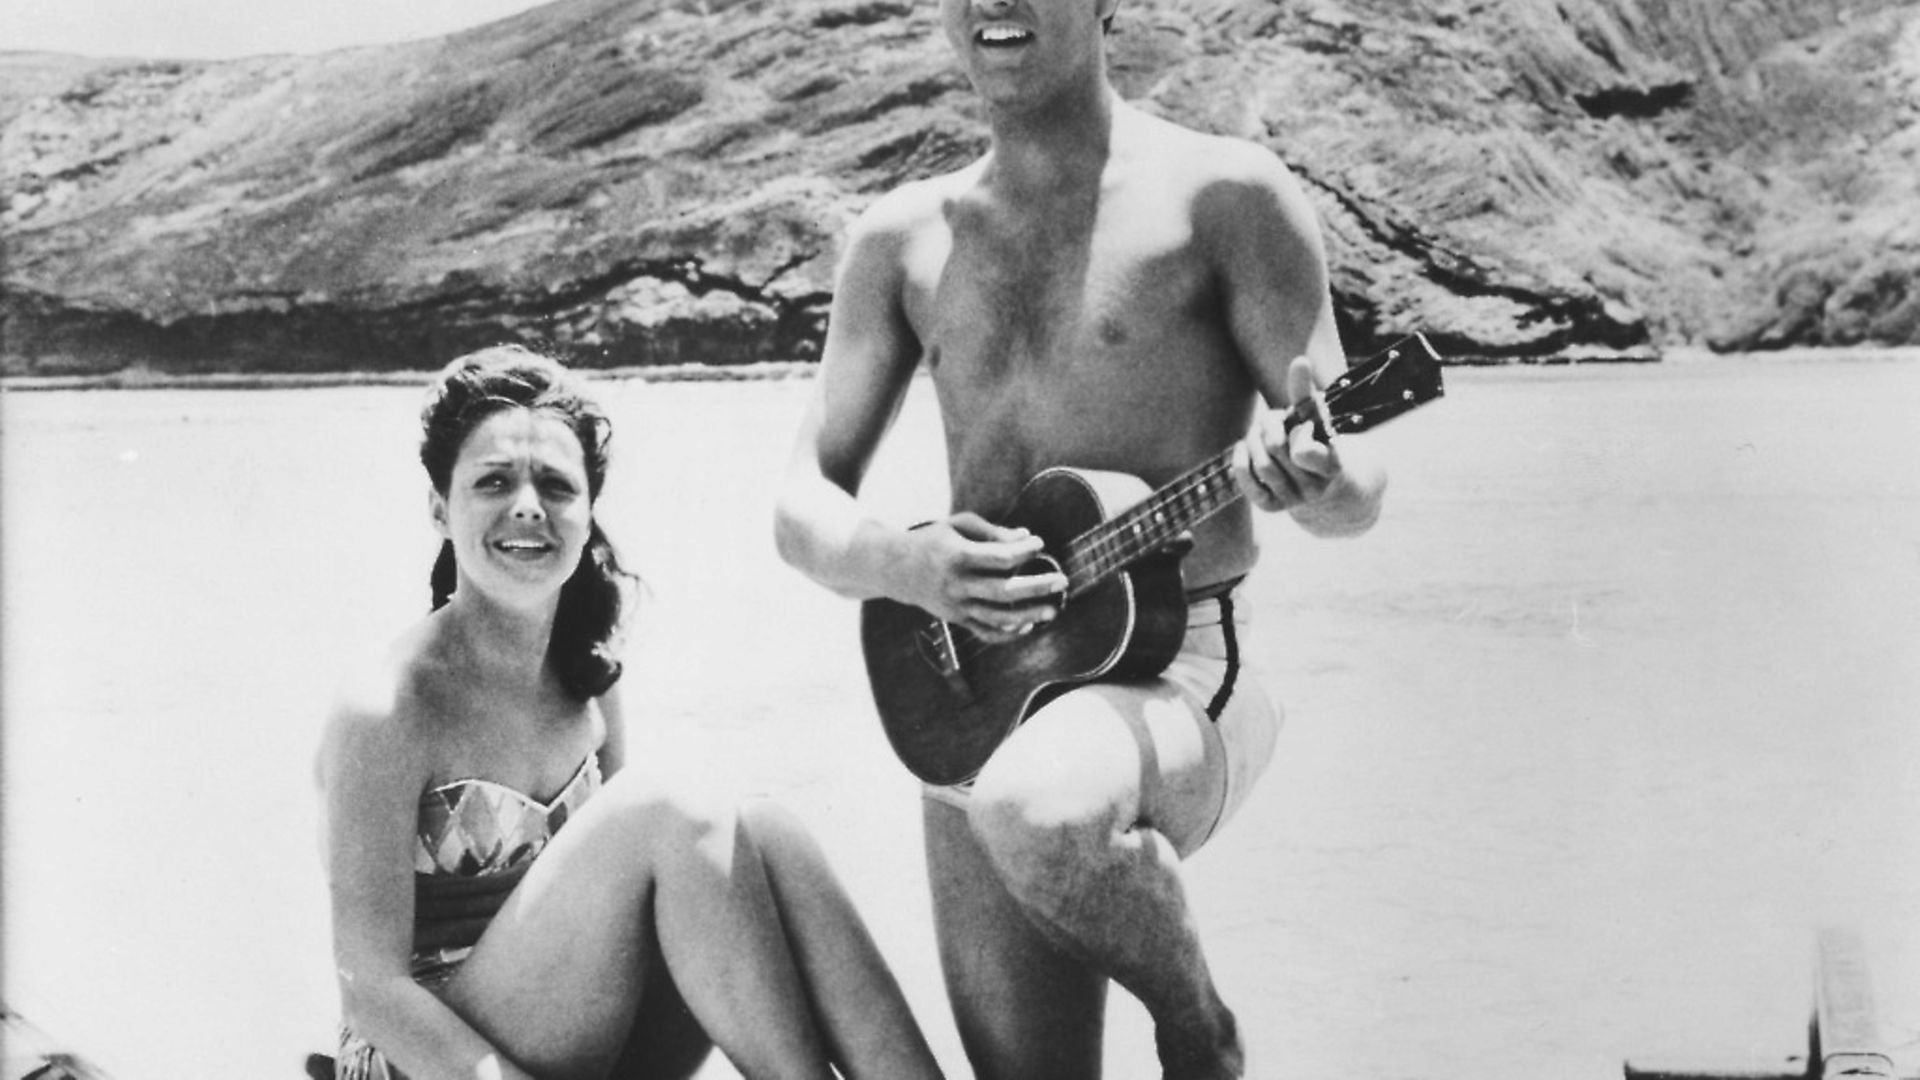 Elvis Presley and Joan Blackman in Blue Hawaii (Photo from Getty Images) - Credit: ullstein bild via Getty Images